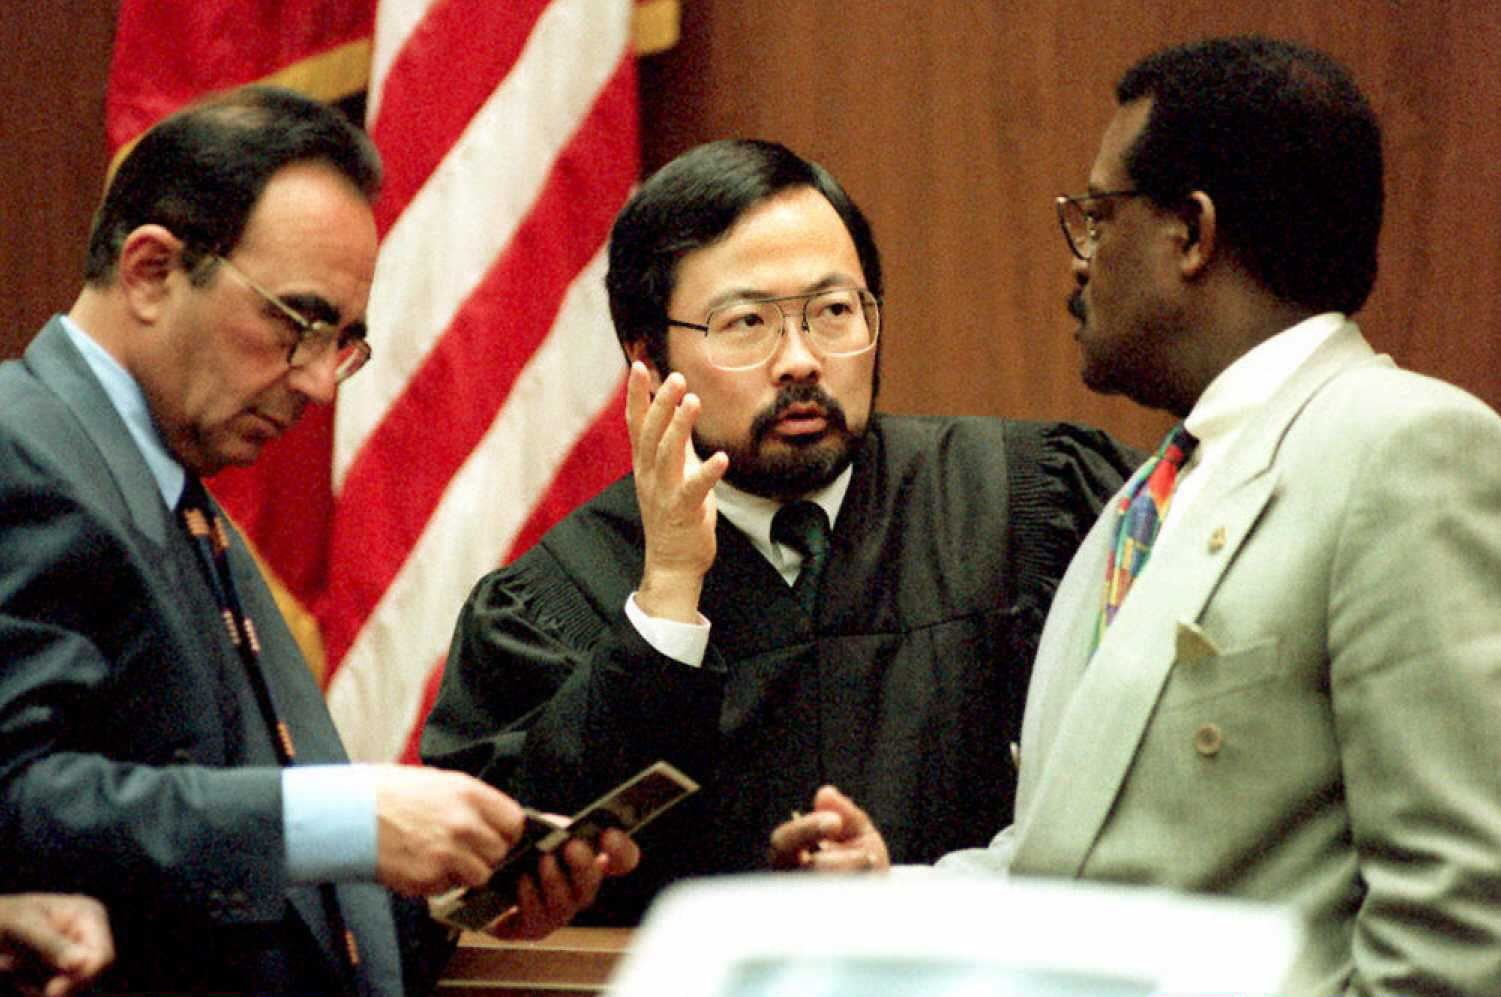 LOS ANGELES, CA - JANUARY 31:  O.J. Simpson defense attorneys Robert Shapiro (L) and Johnnie Cochran Jr. (R) meet Judge Lance Ito (C) 31 January during a sidebar in Simpson's double murder trial.  Shapiro is looking at Polaroids taken of Simpson's ex-wife Nichole Brown-Simpson after a beating incident on 01 January  1989.   (COLOR KEY: Red in flag). AFP PHOTO  (Photo credit should read POO/AFP/Getty Images)